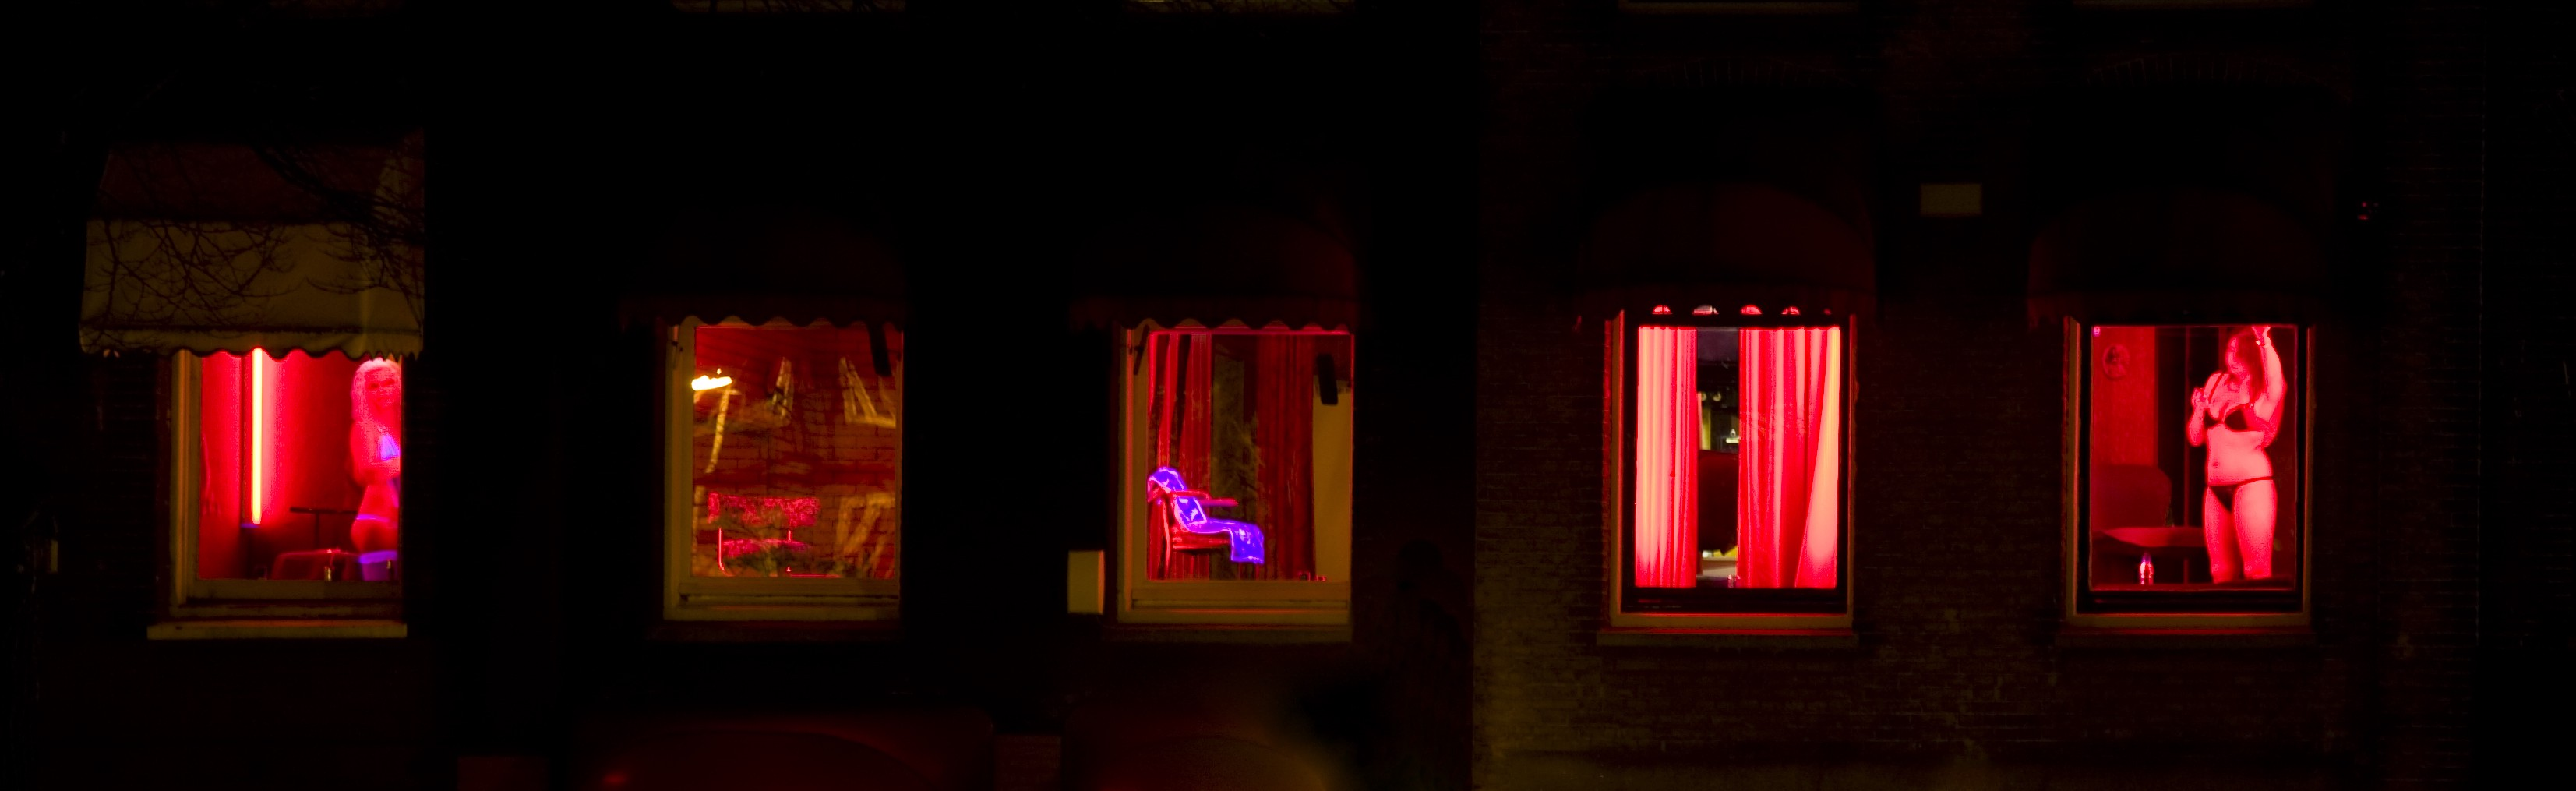 Red light amsterdam prostitutes district Red Light